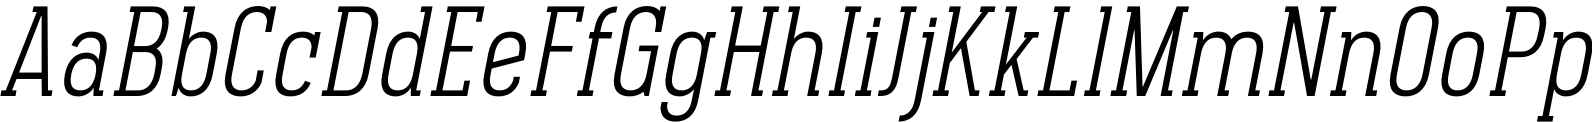 Pekora Light Slab Serif Italic